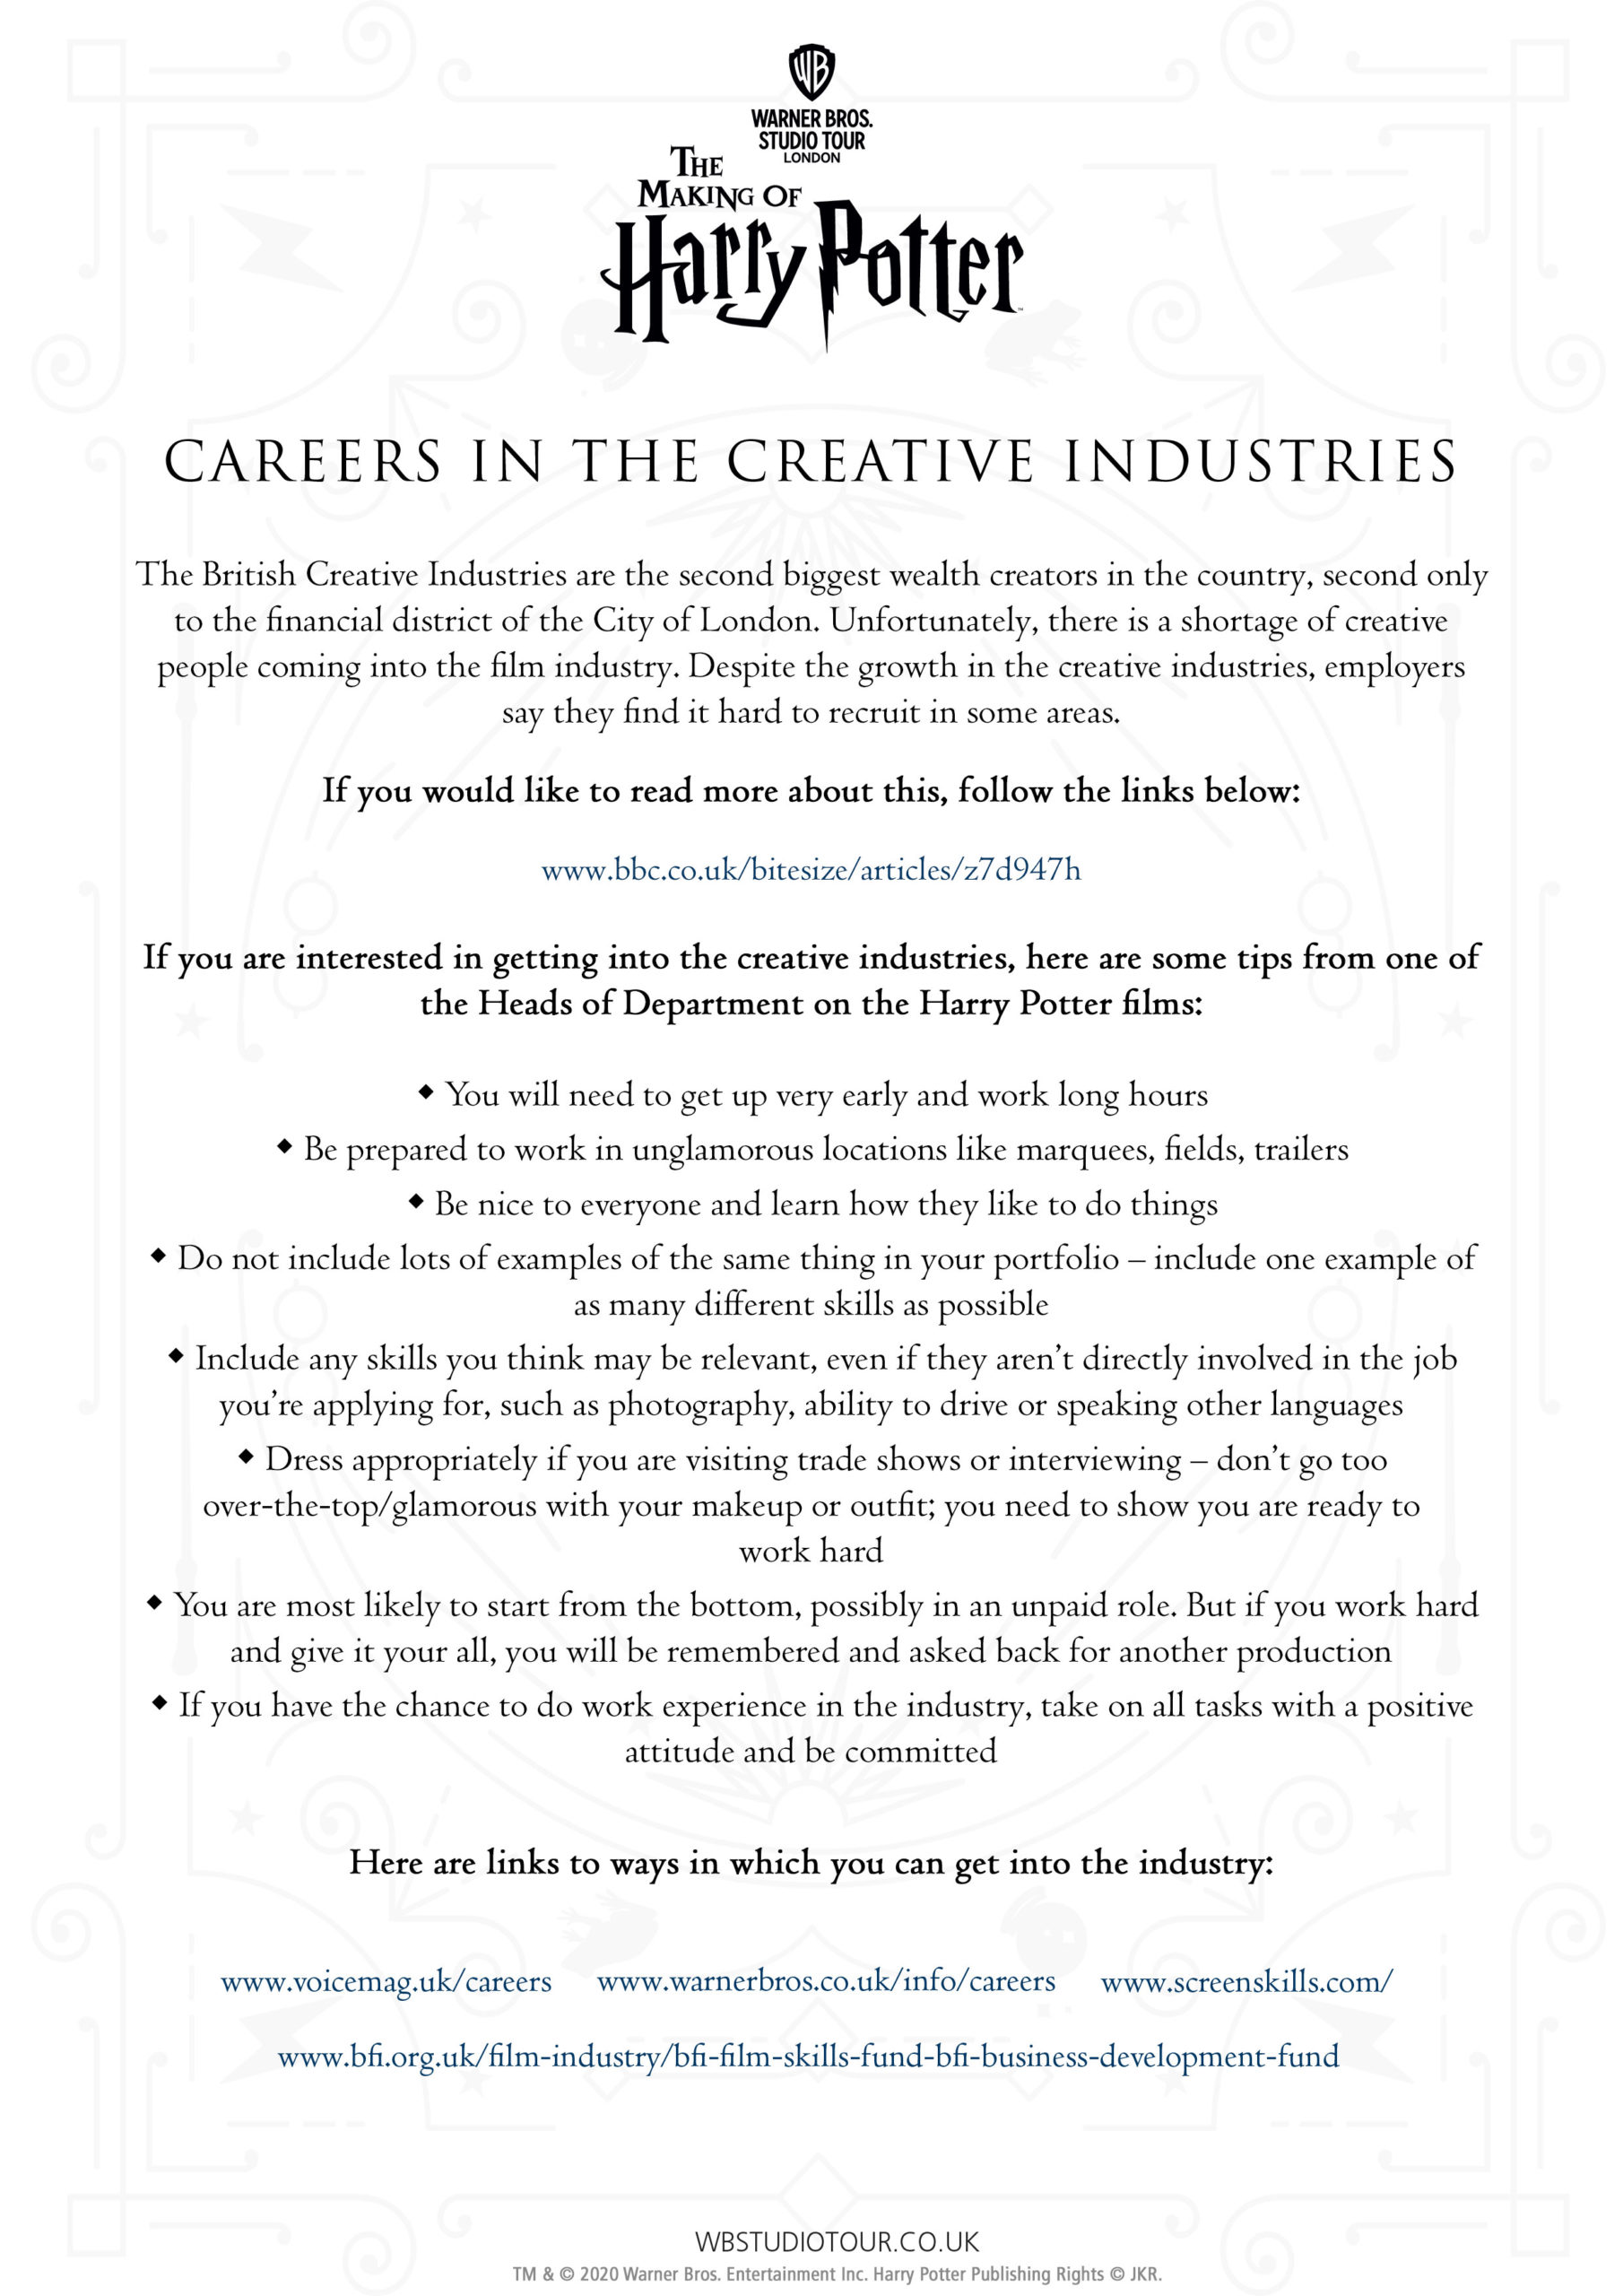 Careers activity worksheets page 1 - Studio Tour at Home